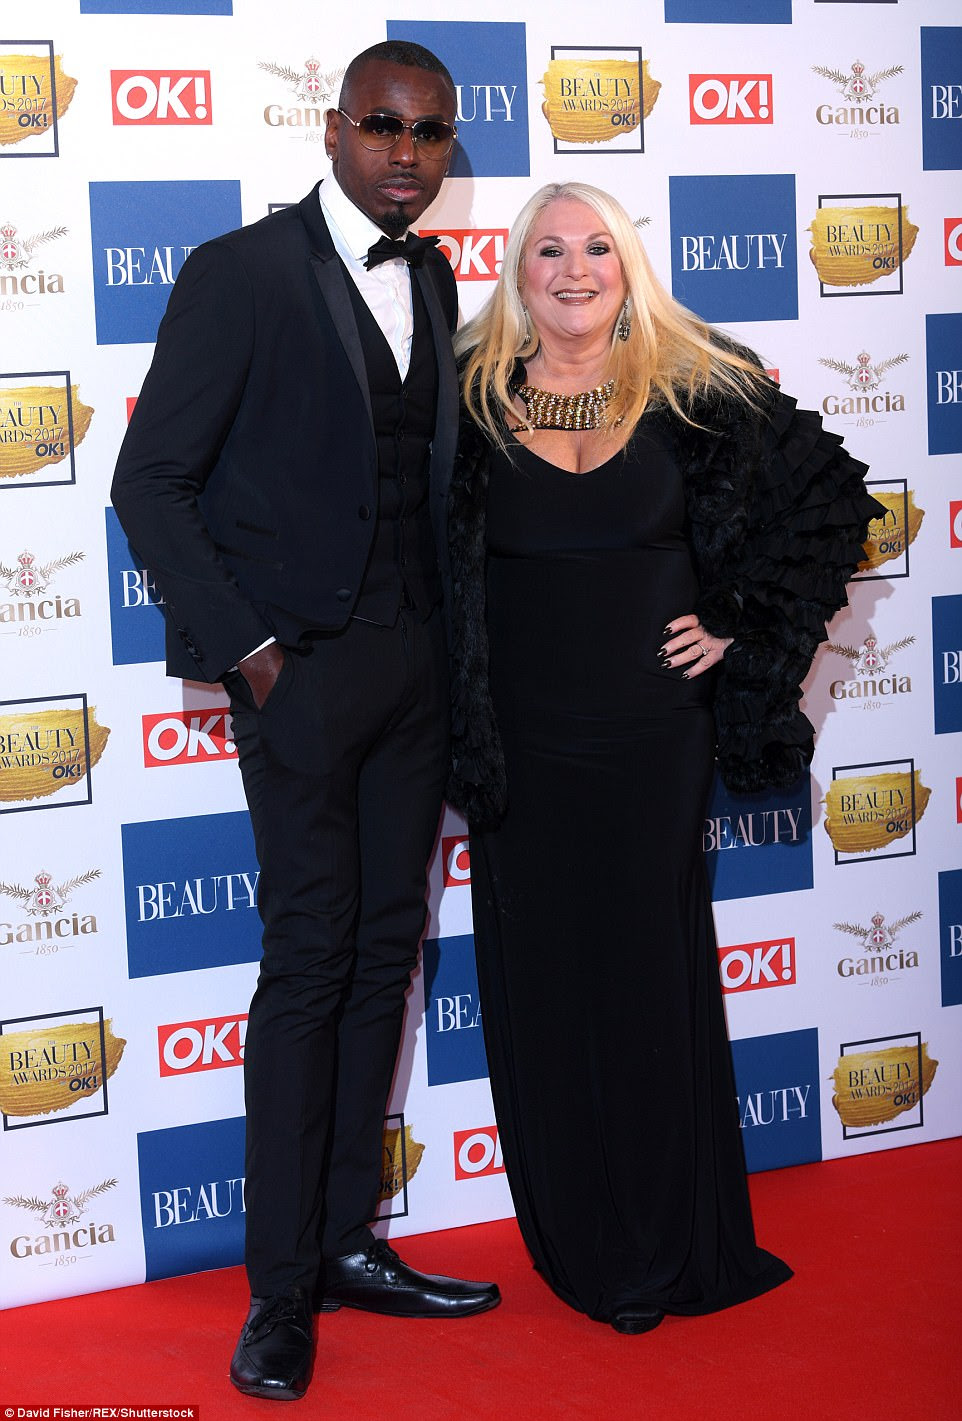 Cool characters! Vanessa Feltz was joined by her dashing partnerBen Ofoedu who opted to sport glasses inside